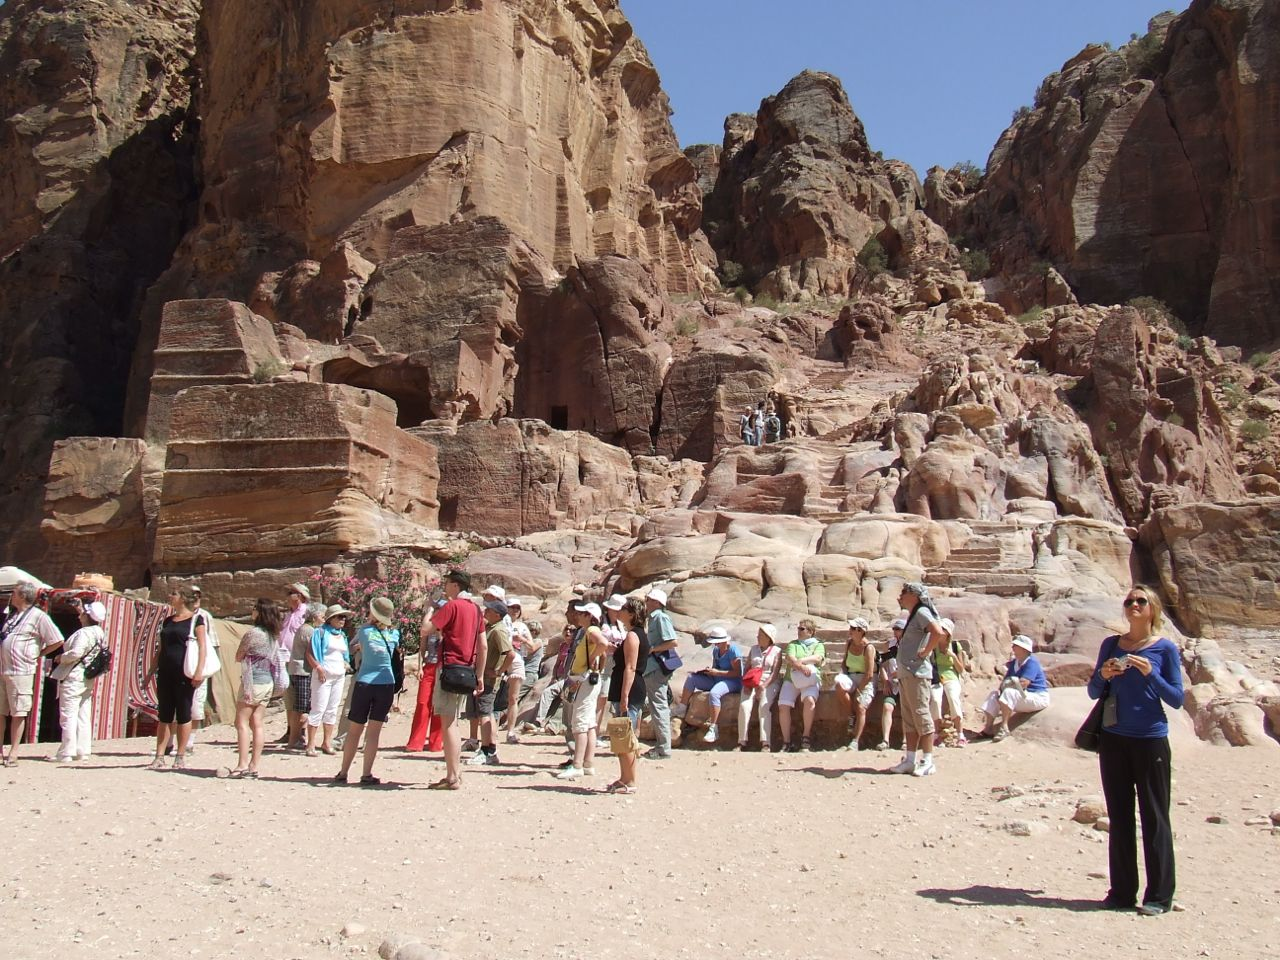 Tourism Planning in Petra, Jordan